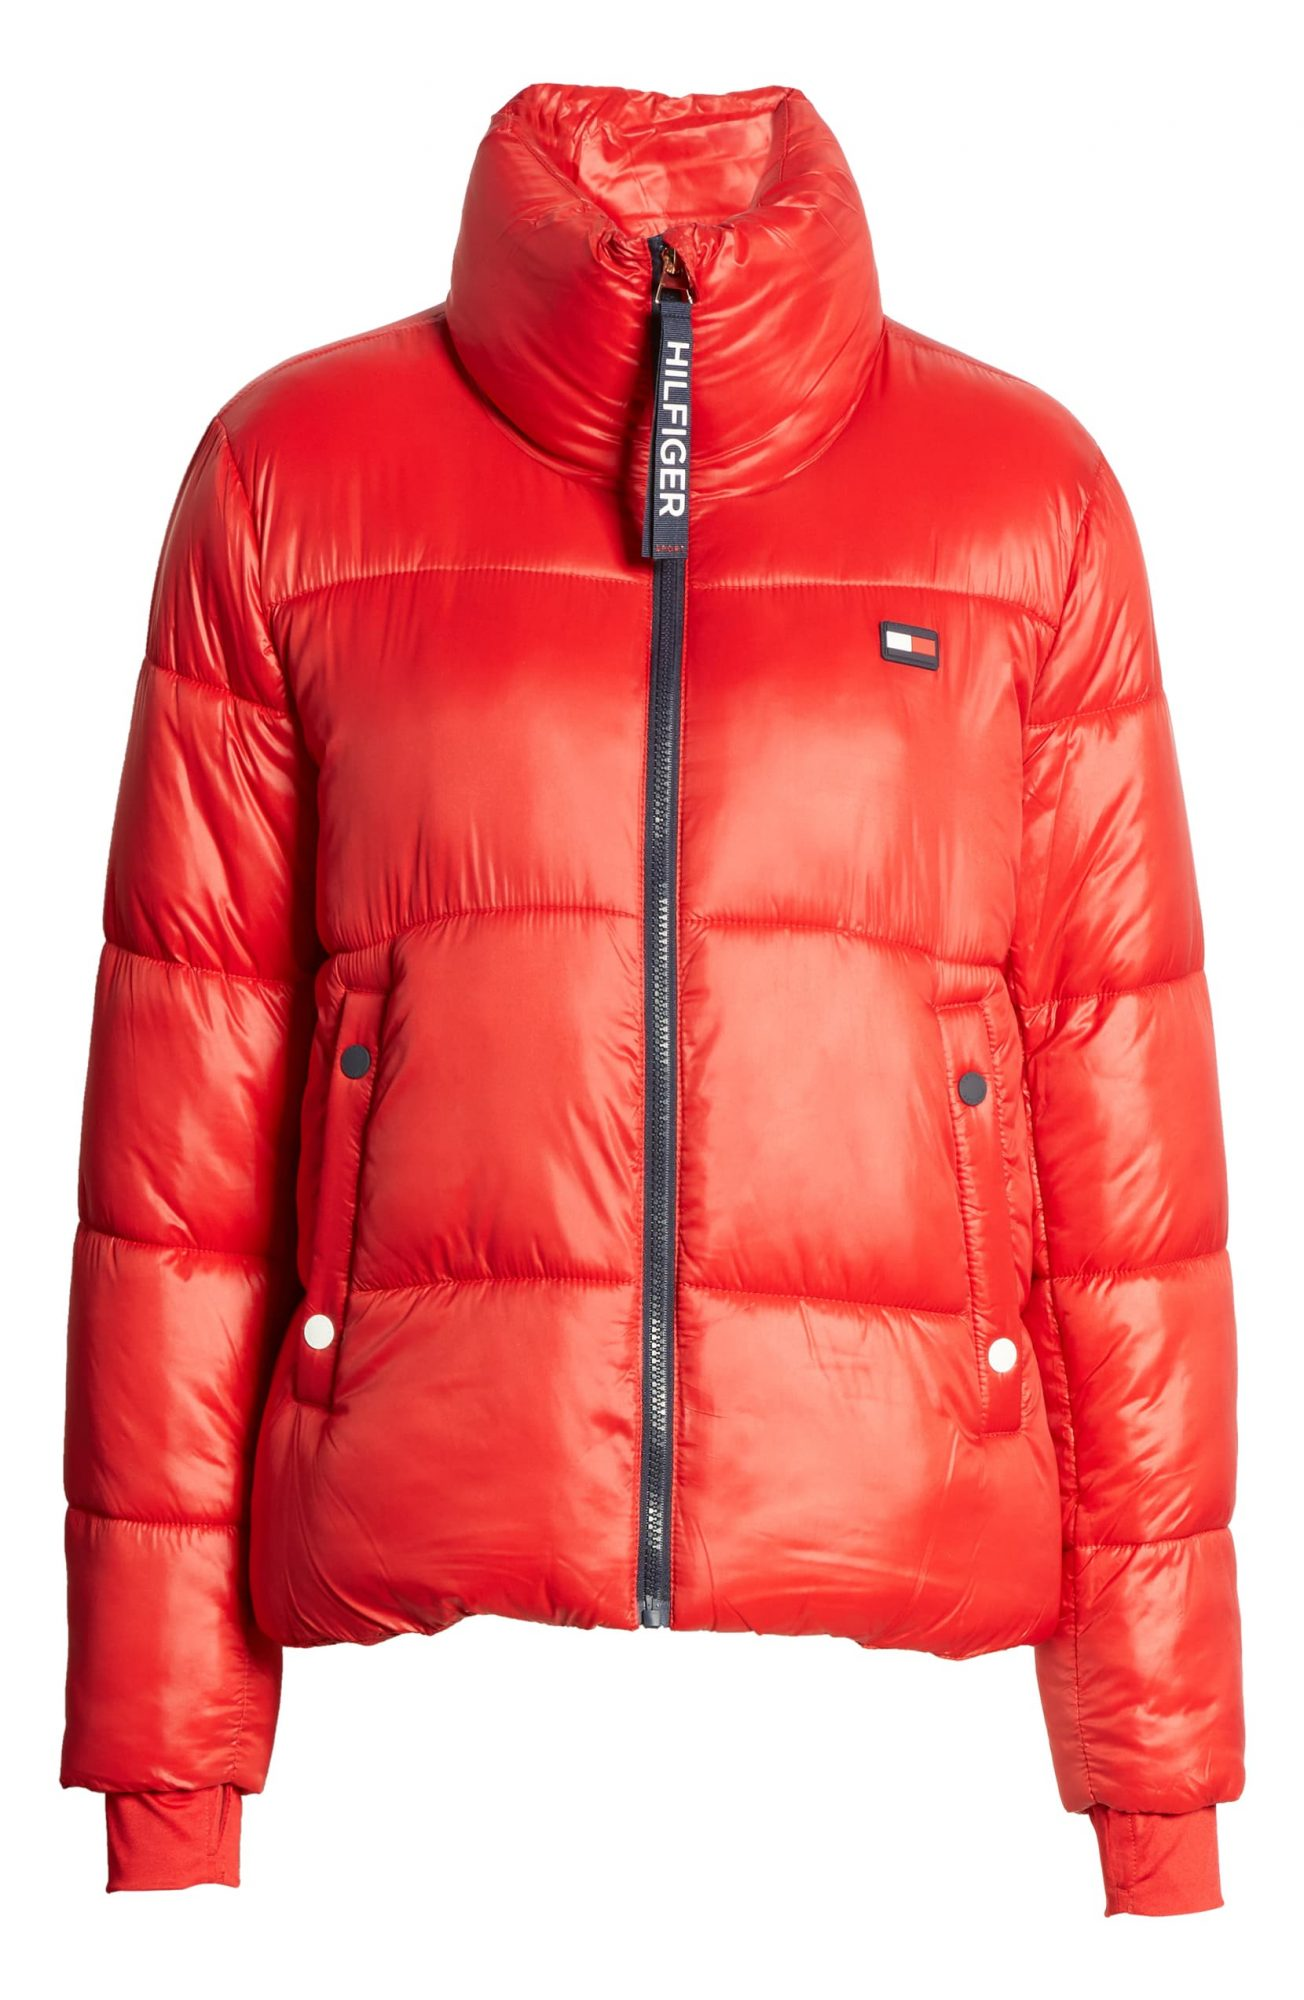 Tommy Hilfiger Red Puffer Jacket